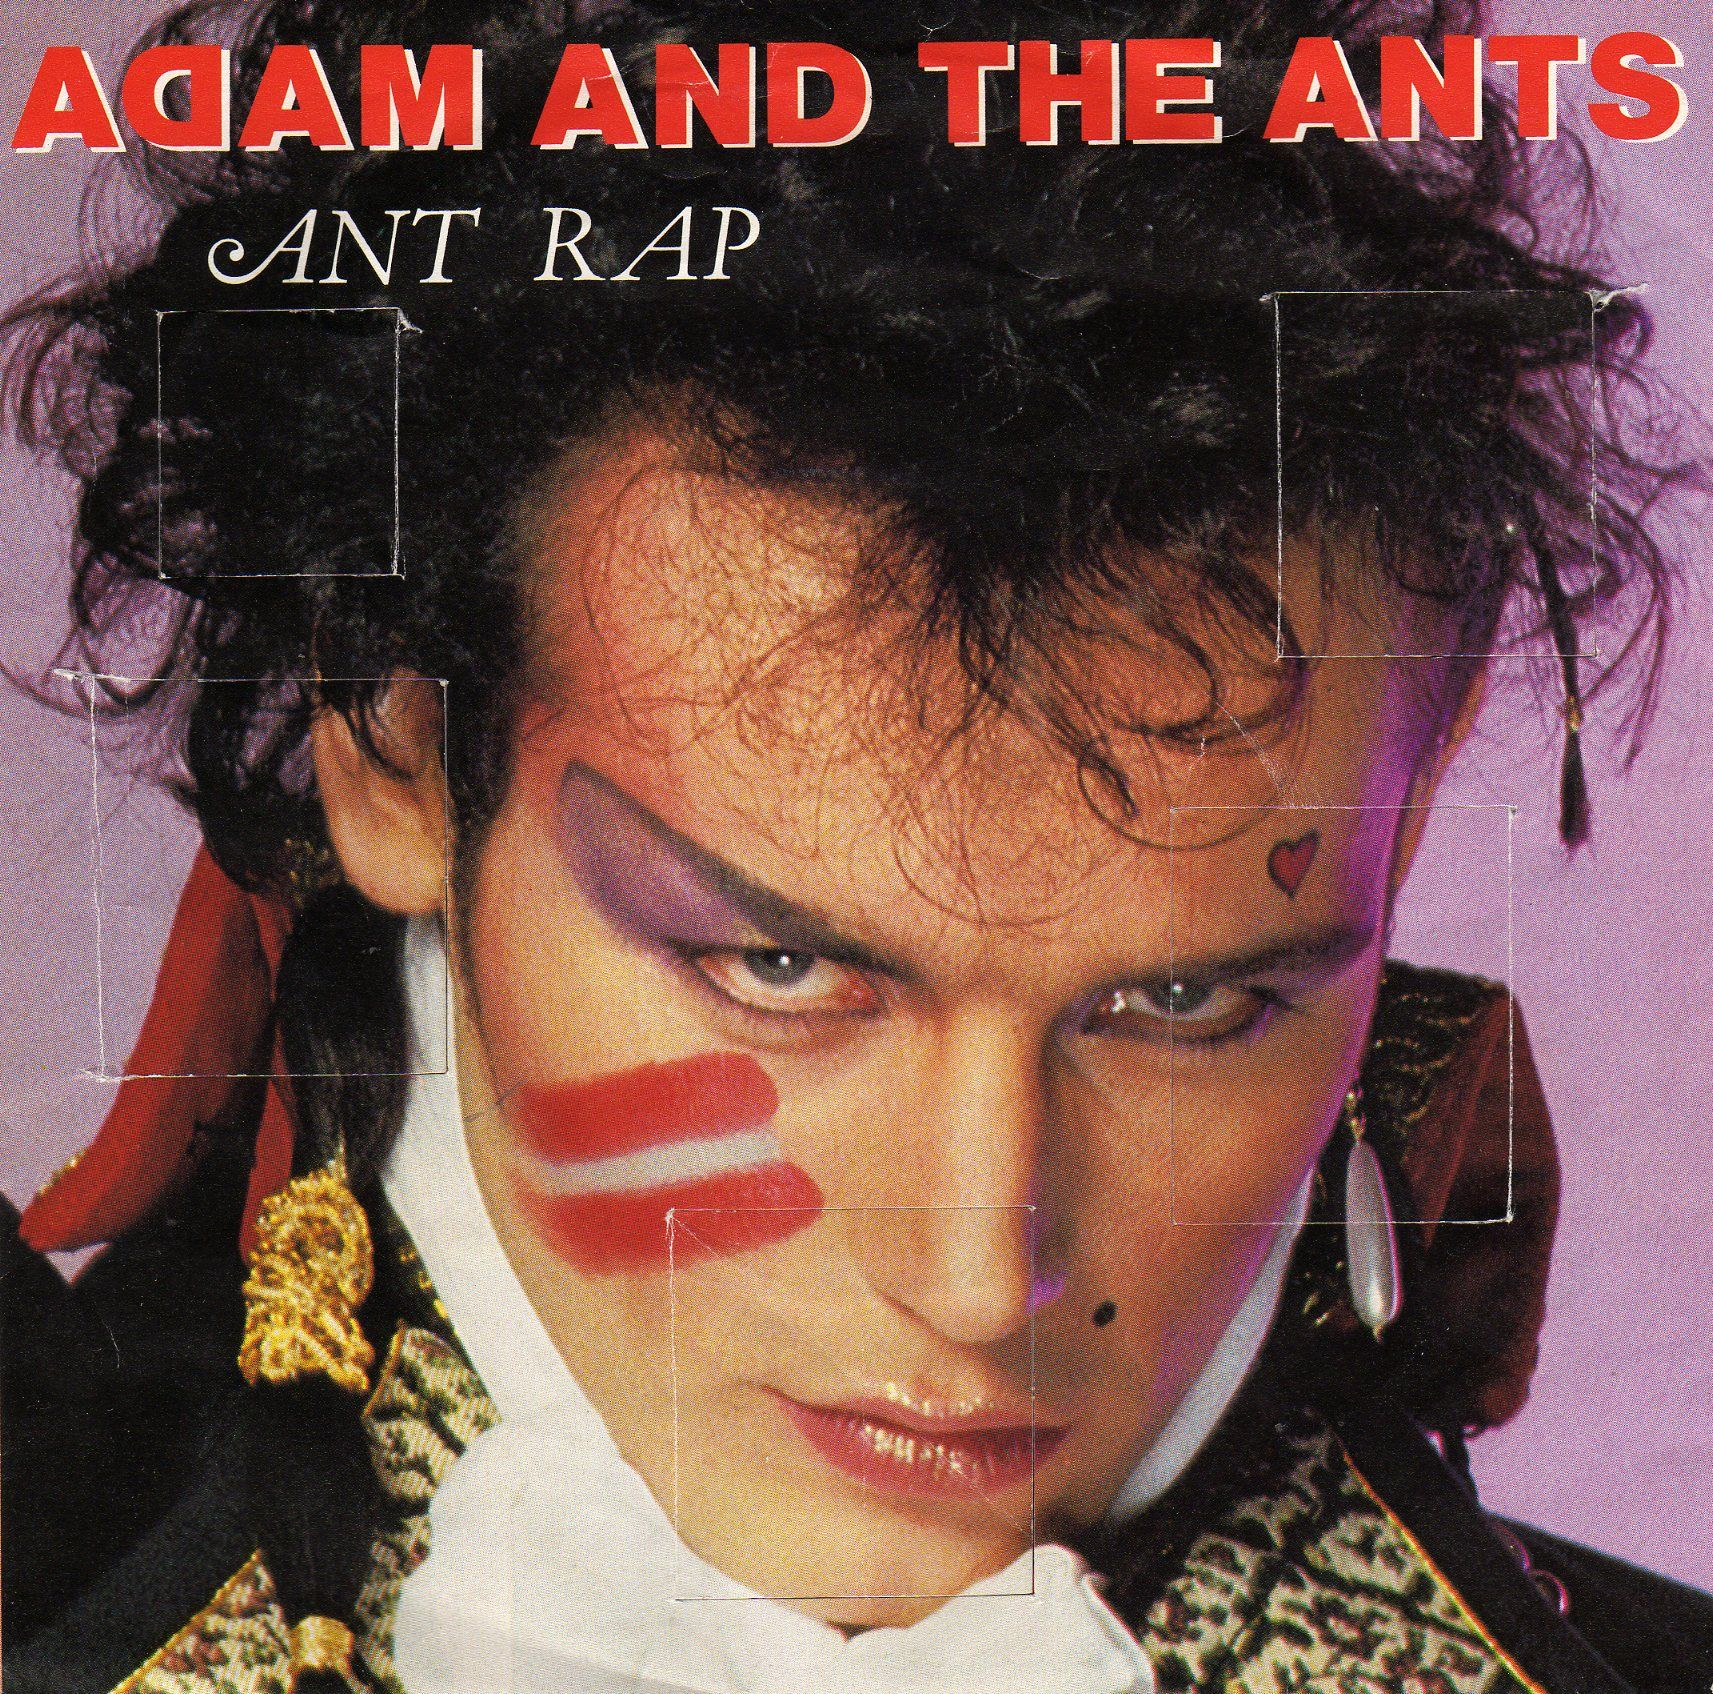 Adam and the Ants Ant music, Rap, Cool album covers